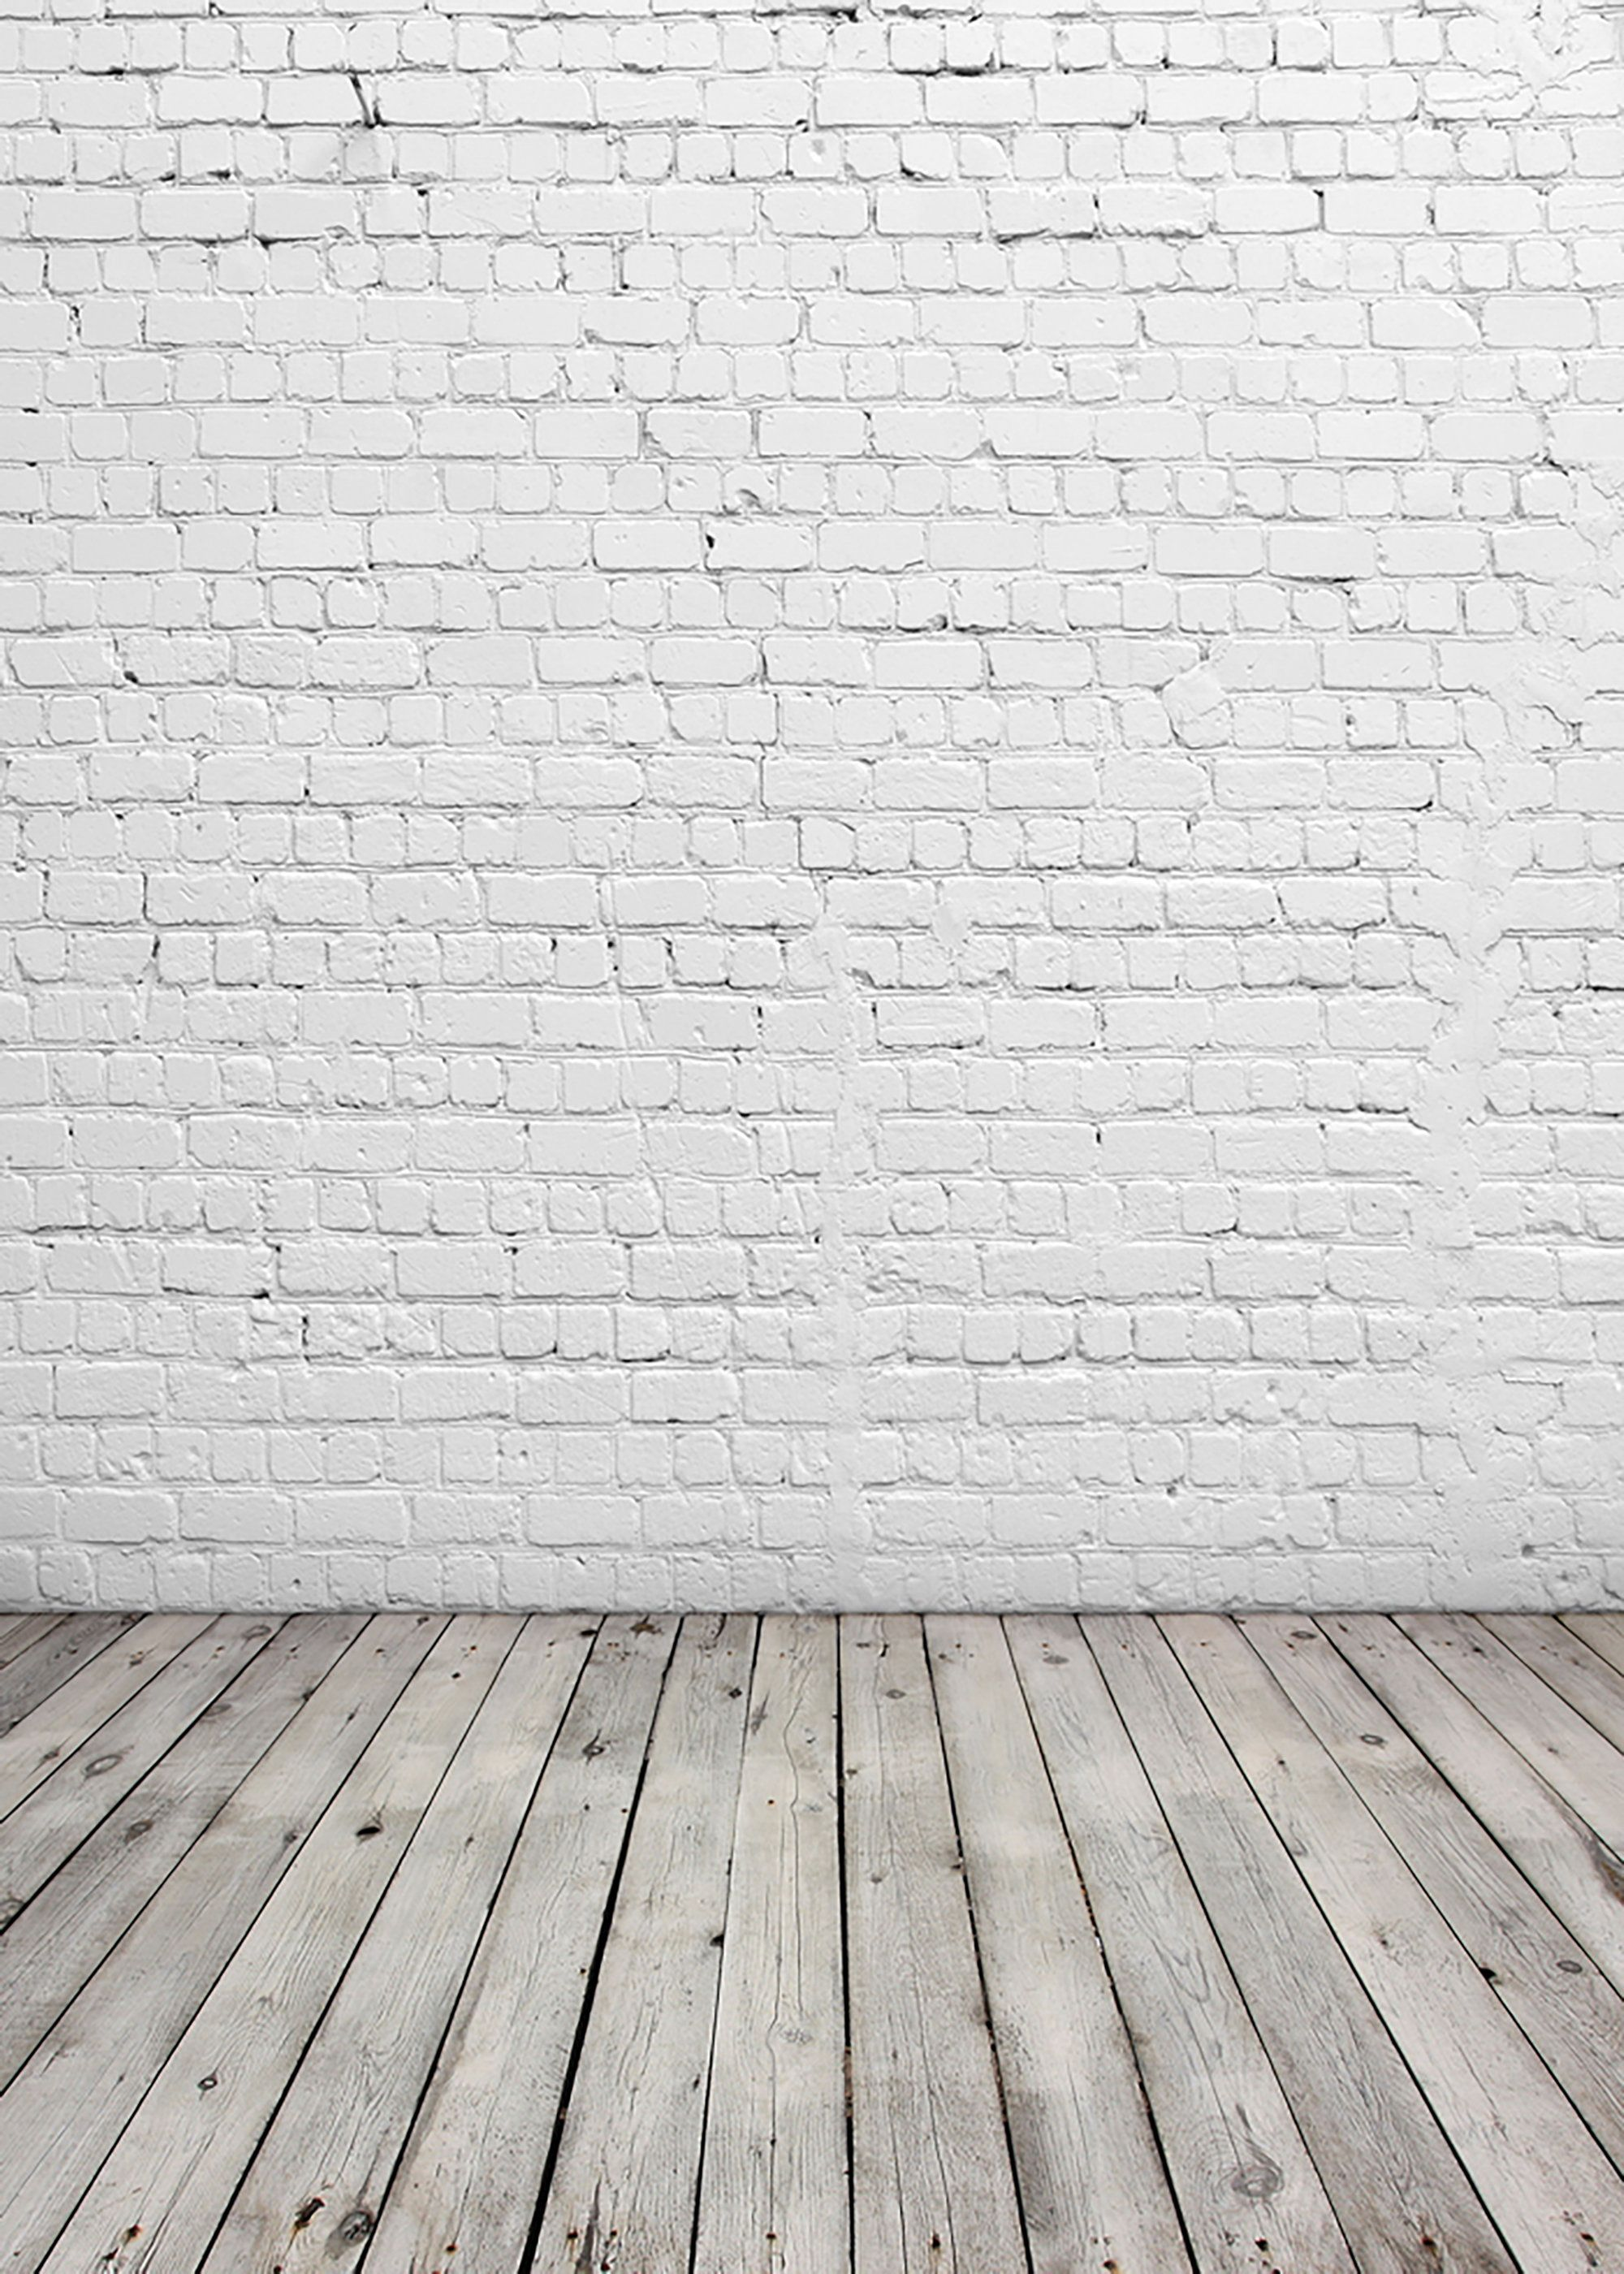 Creative Brick Wall Backdrop Vinyl Cloth Backdrop Photography Etsy Brick Wall Backdrop Wall Backdrops White Brick Walls